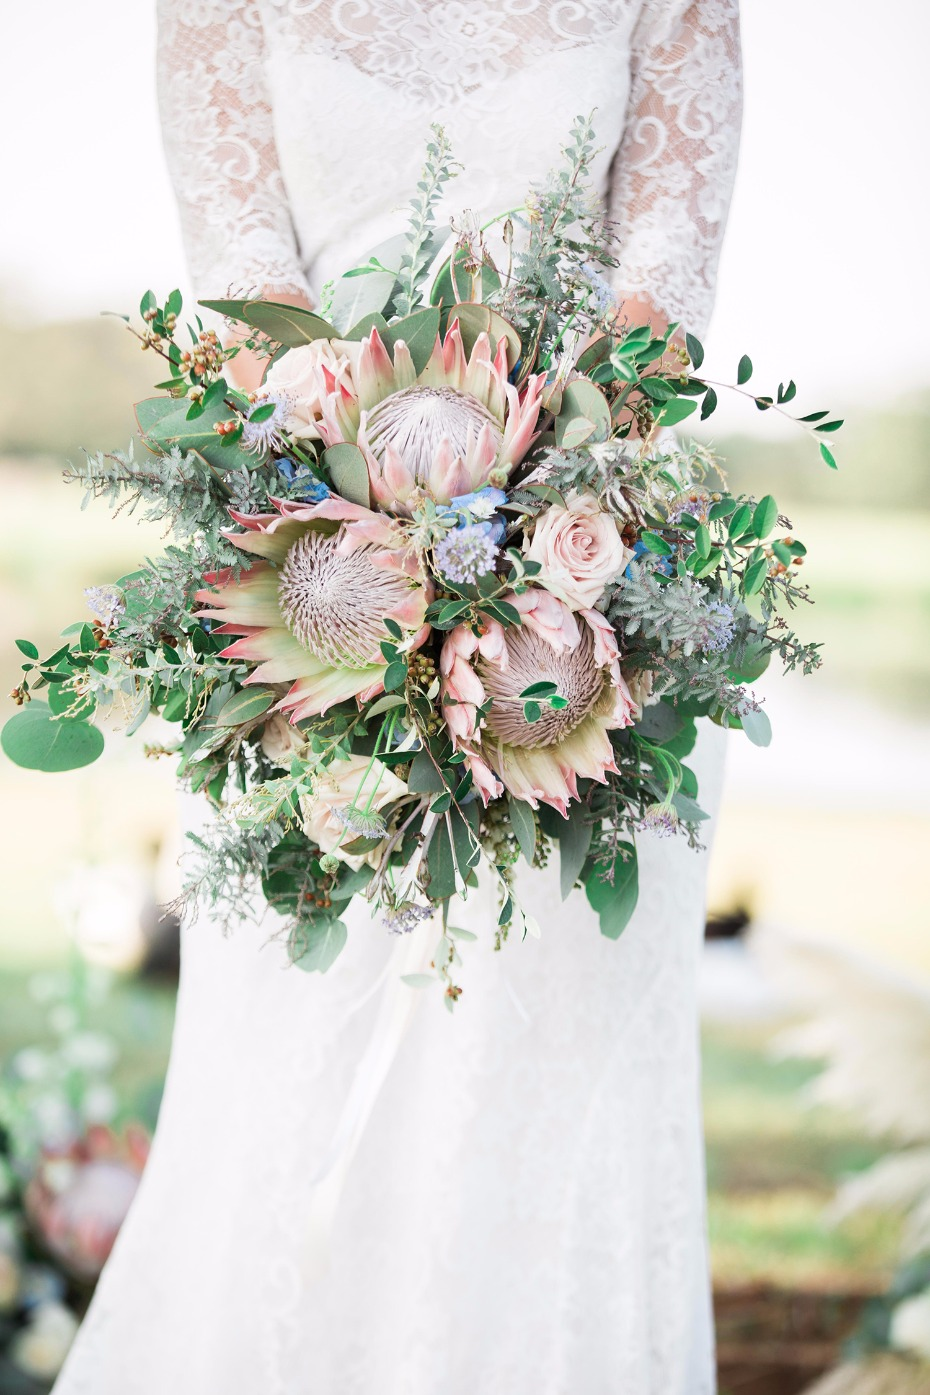 Free Spirited Bohemian Wedding Ideas At The Wildflower